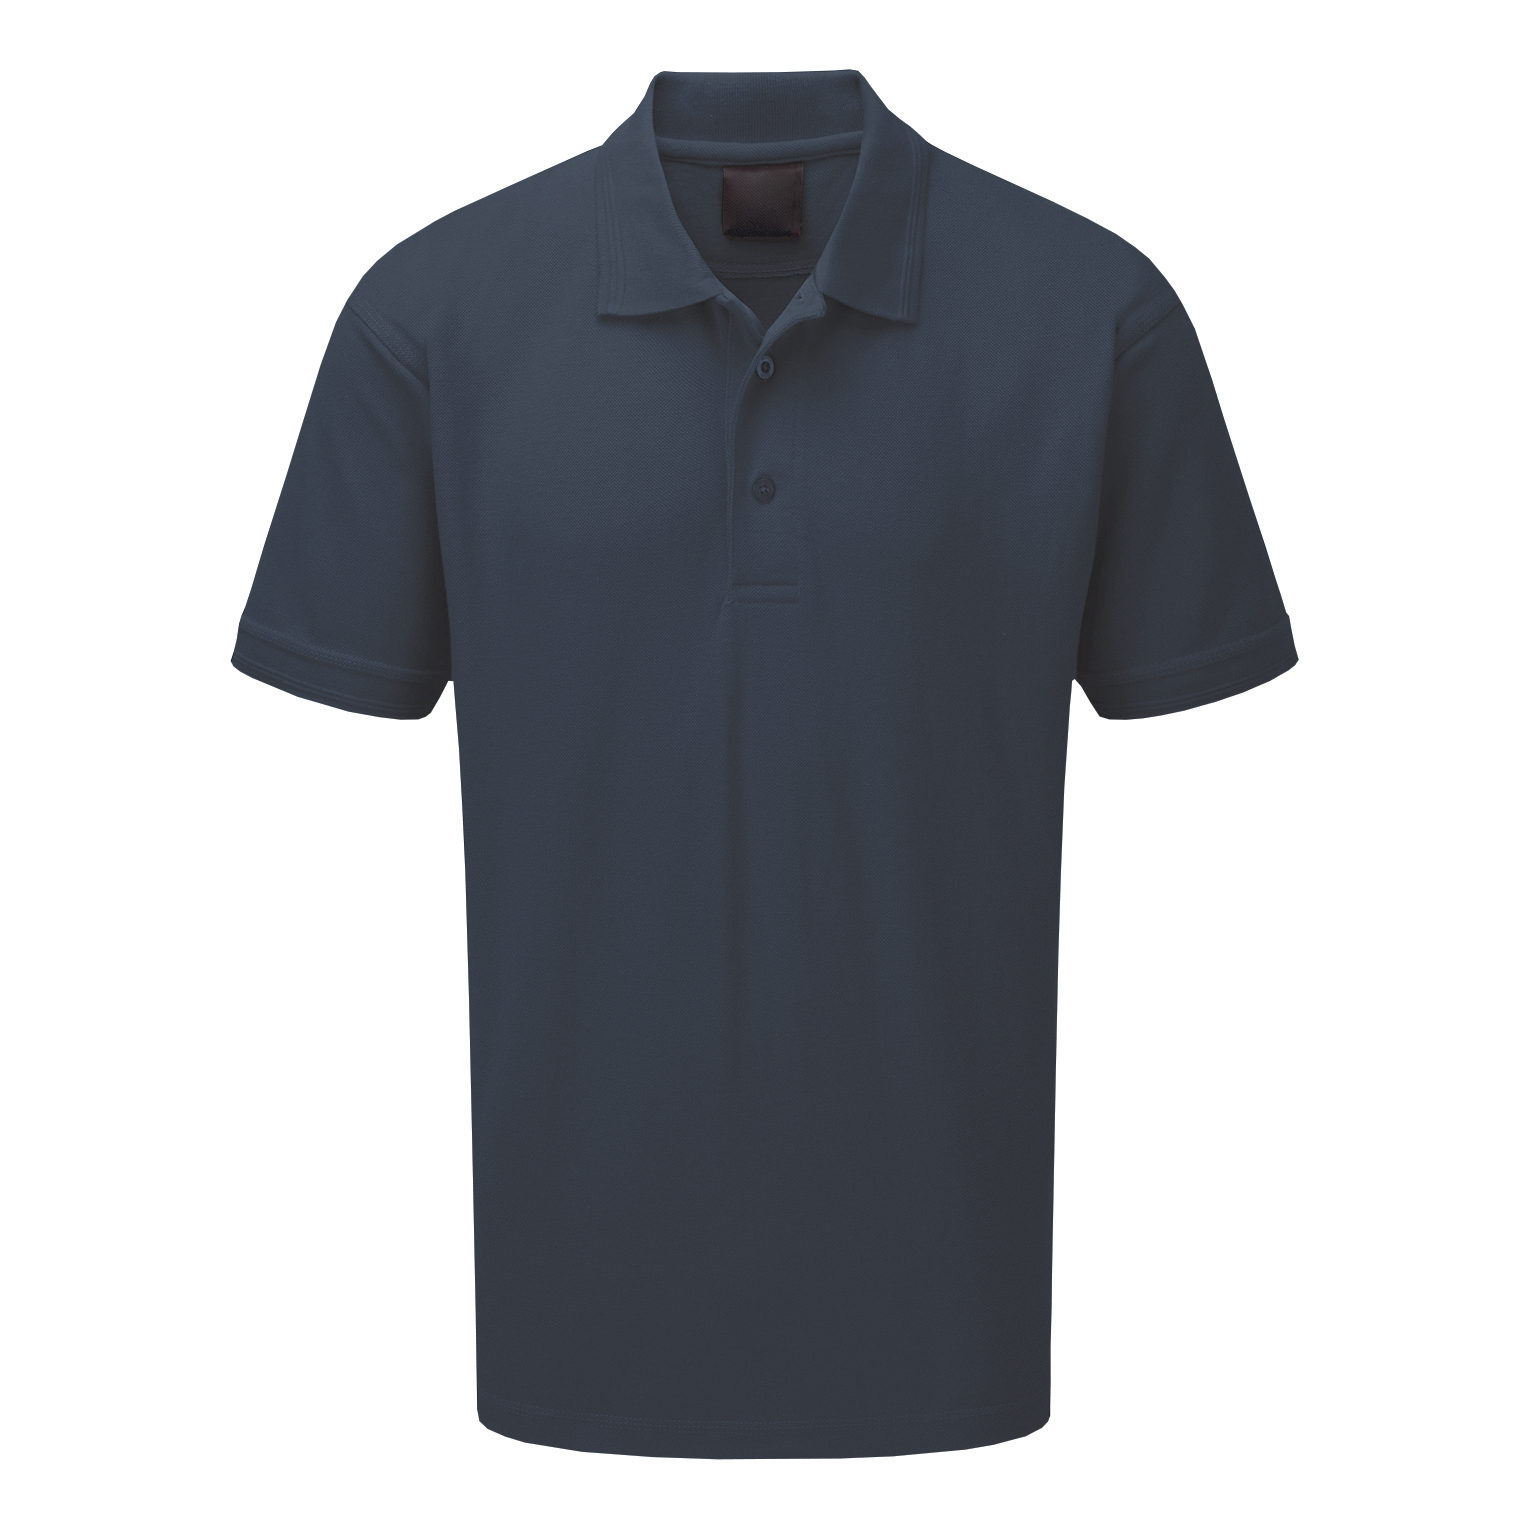 Premium Polo Triple Stitched 220gsm 2XL Graphite